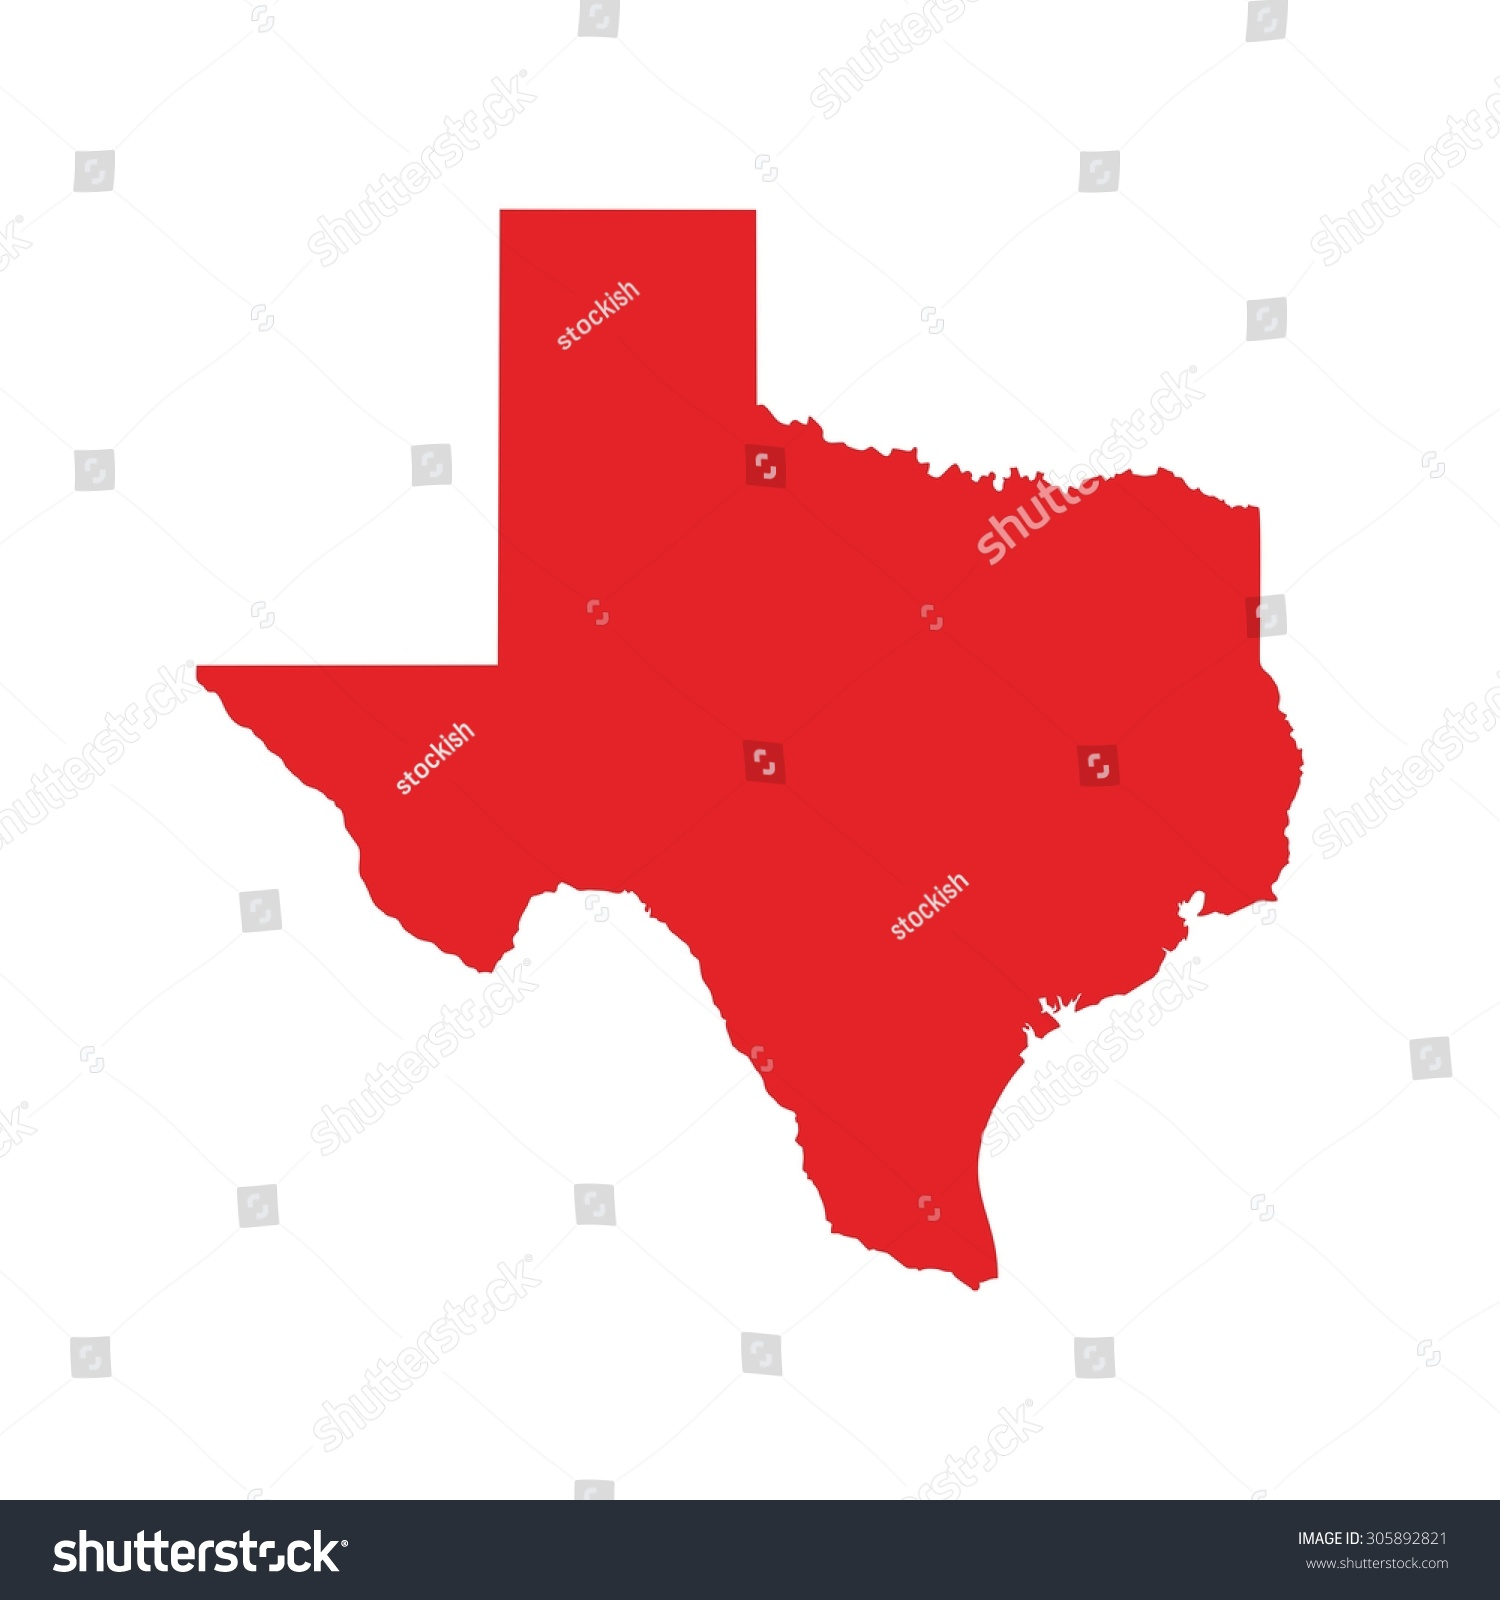 Red Map Texas Map Texas Icon Stock Vector Shutterstock - Maptexas